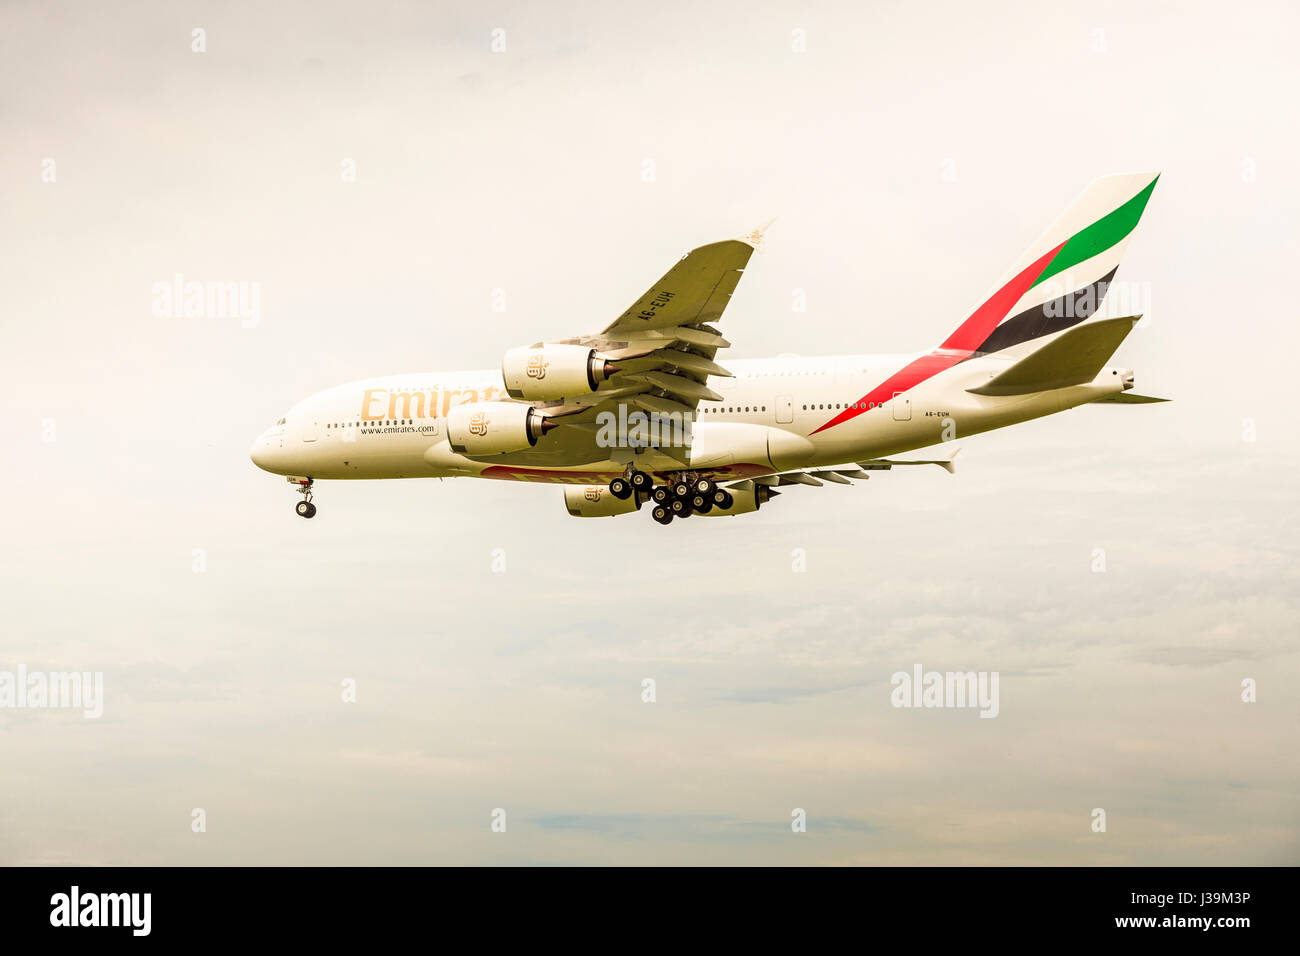 Emirates Airbus A380 on final approach at CHC airport, Christchurch, South Island, New Zealand - Stock Image